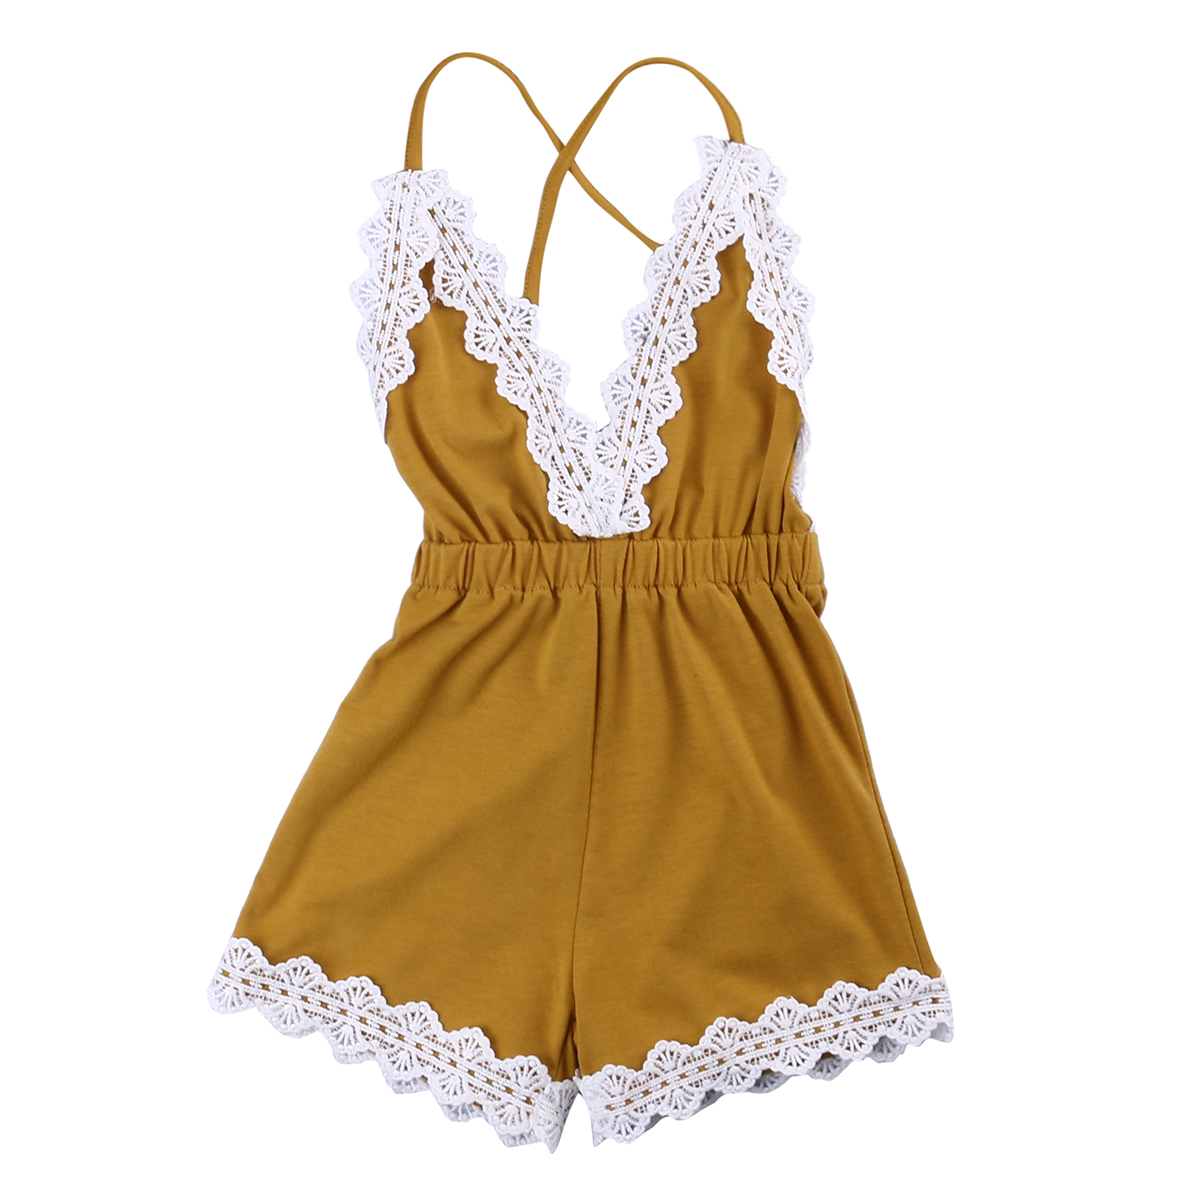 Newborn Adorable Baby Girls Infant Lace Sleeveless Romper V-Neck Backless Jumpsuit Clothes Outfit Sunsuit Set